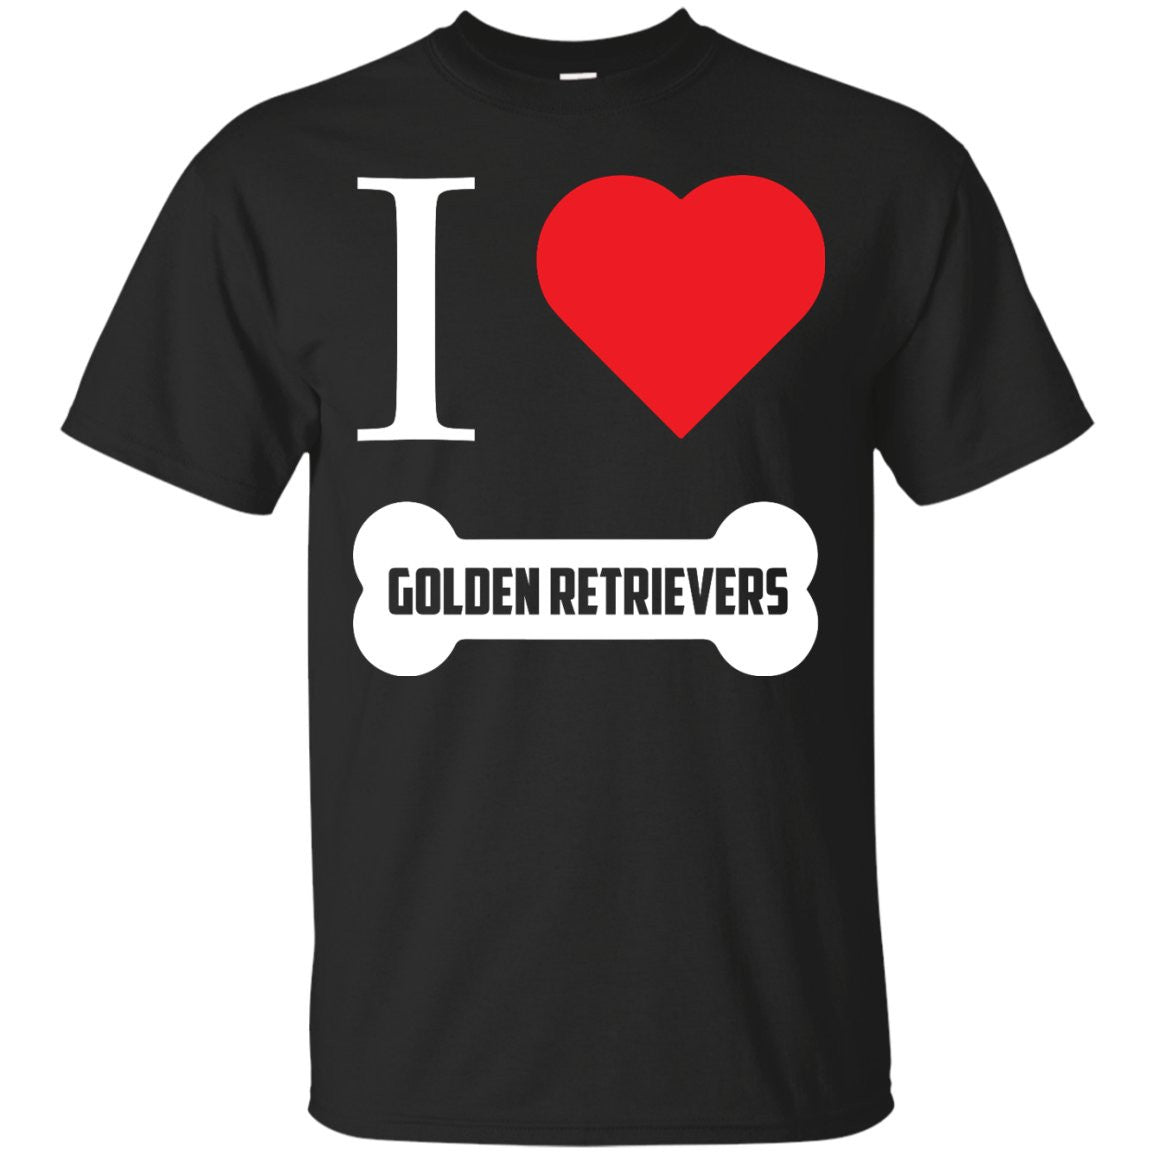 Golden Retriever- I LOVE MY GOLDEN RETRIEVER (BONE DESIGN) -  Custom Ultra Cotton T-Shirt